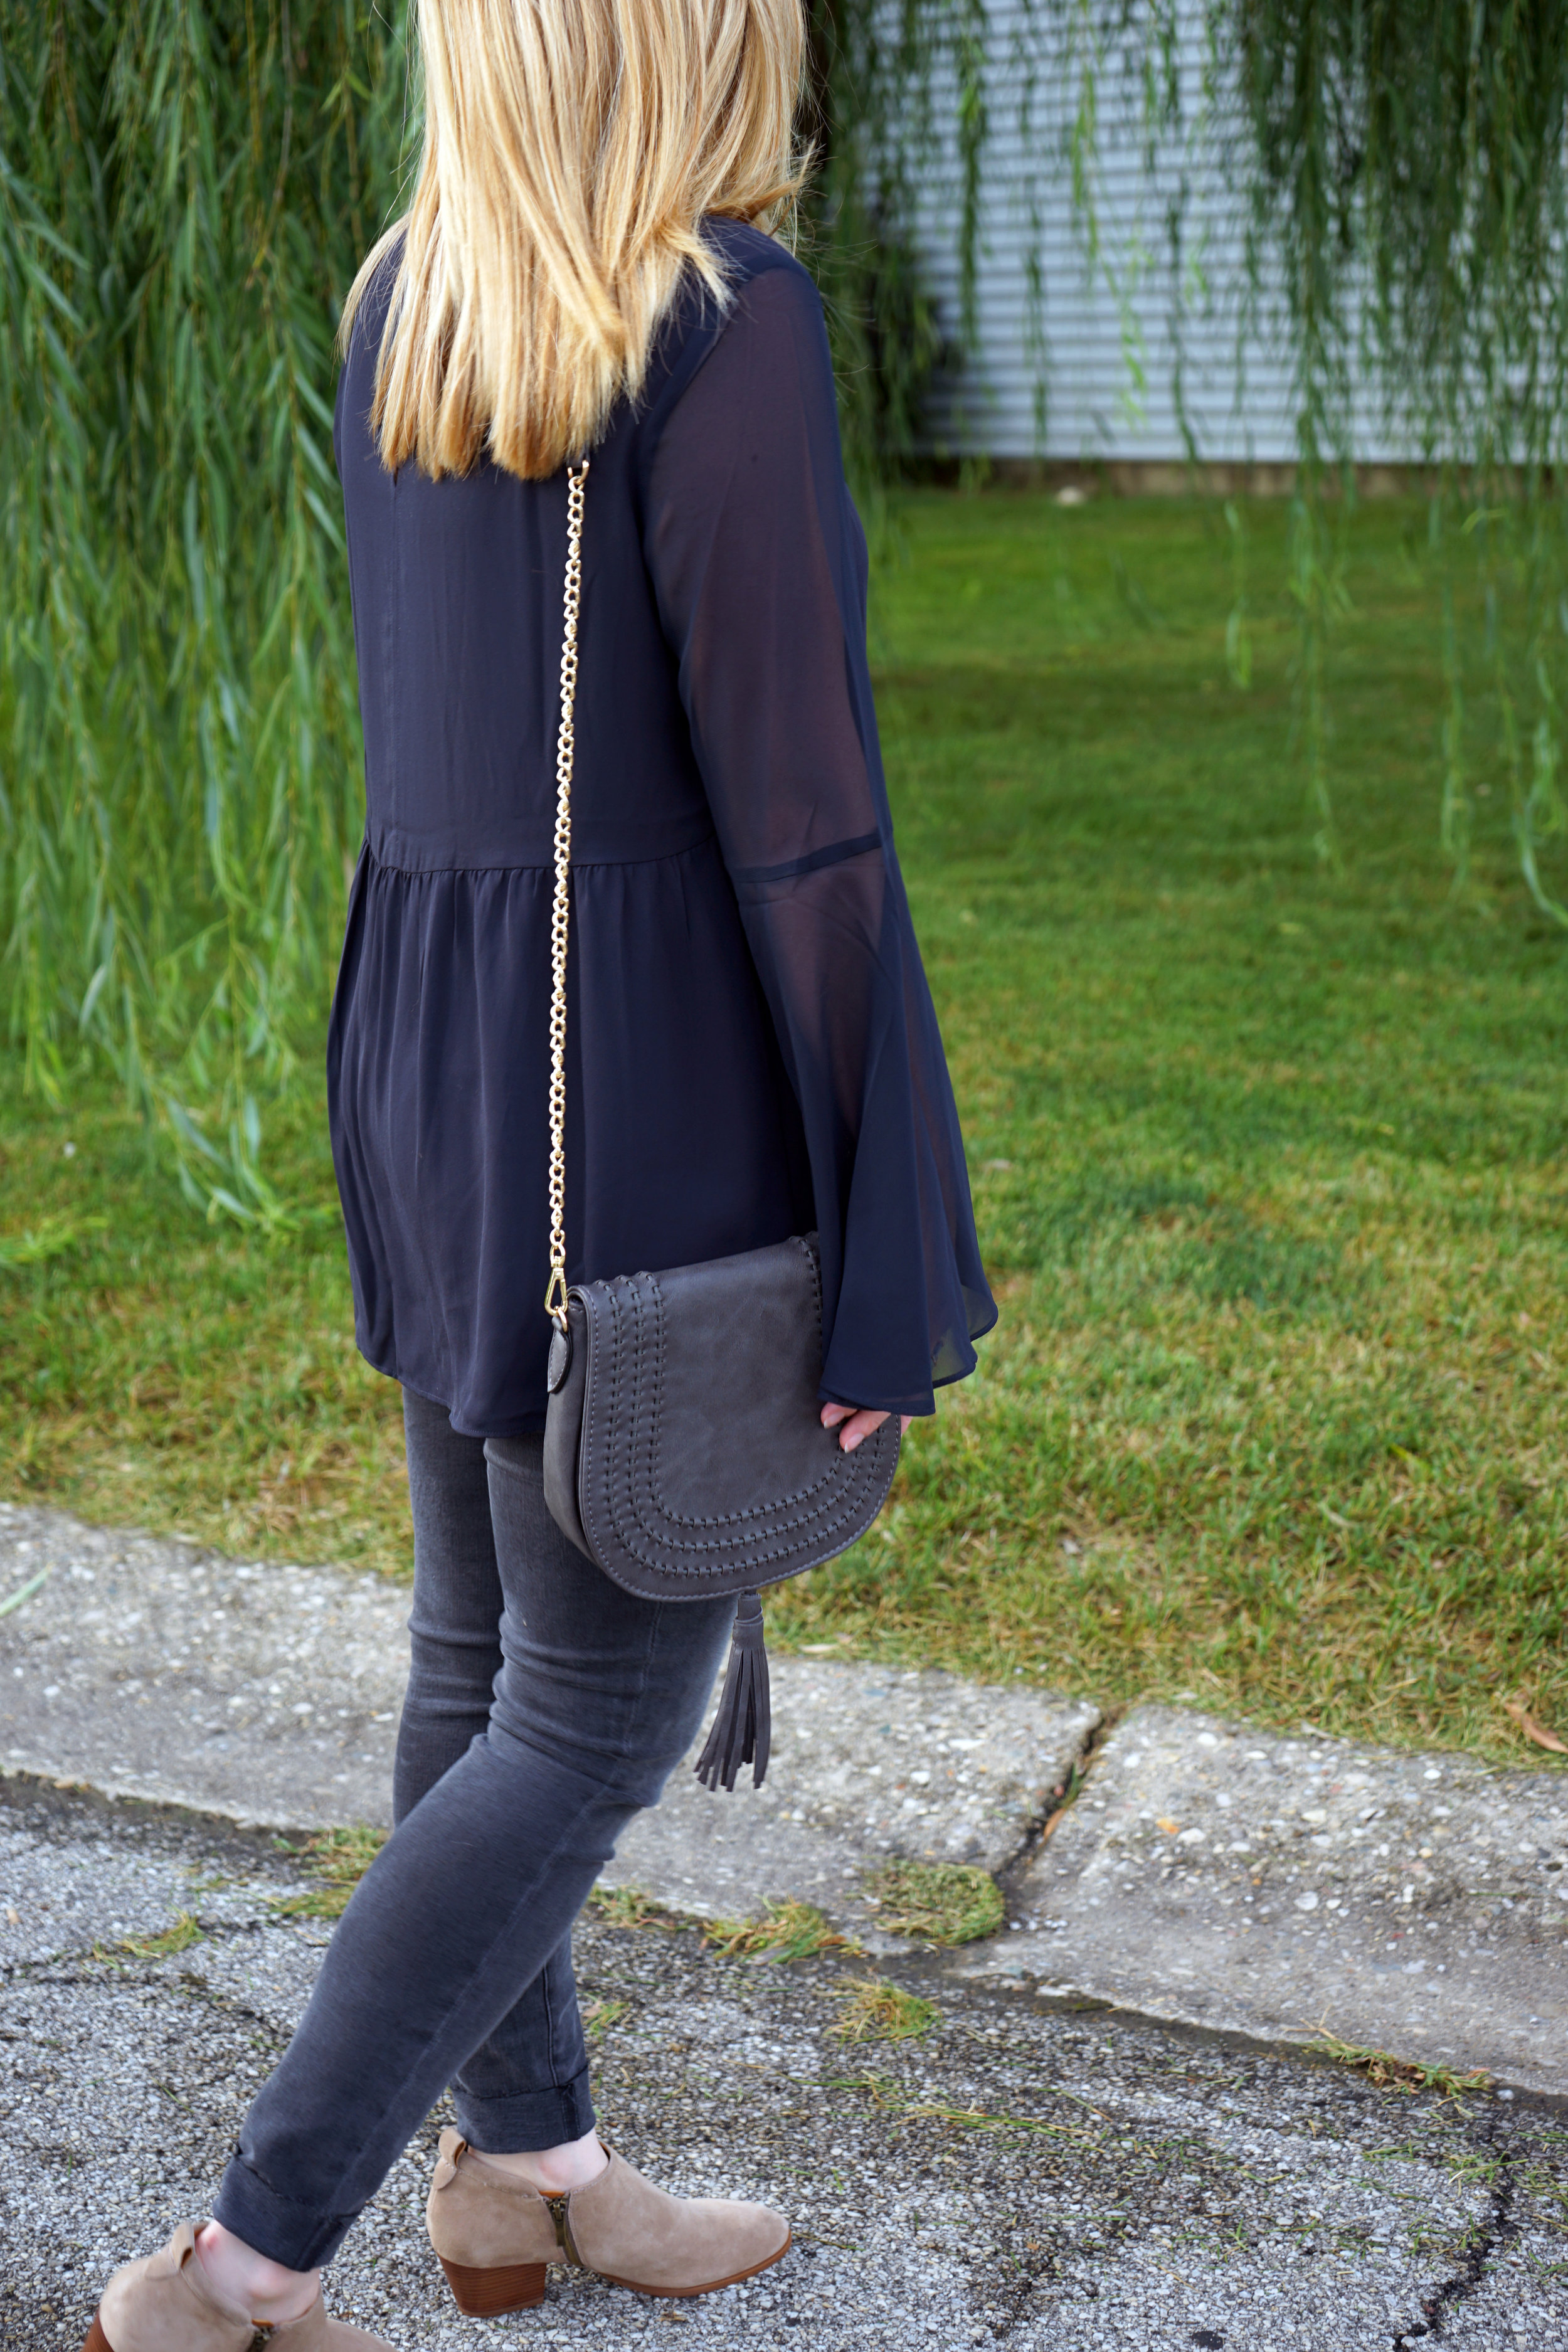 Ann Taylor LOFT Sheer Bell Sleeve blouse, FRAME denim Le Skinny de Jeanne Jeans muddy waters, Urban Expressions Jessa crossbody, Franco Sarto Granite bootie, UncommonGoods waterfall ring